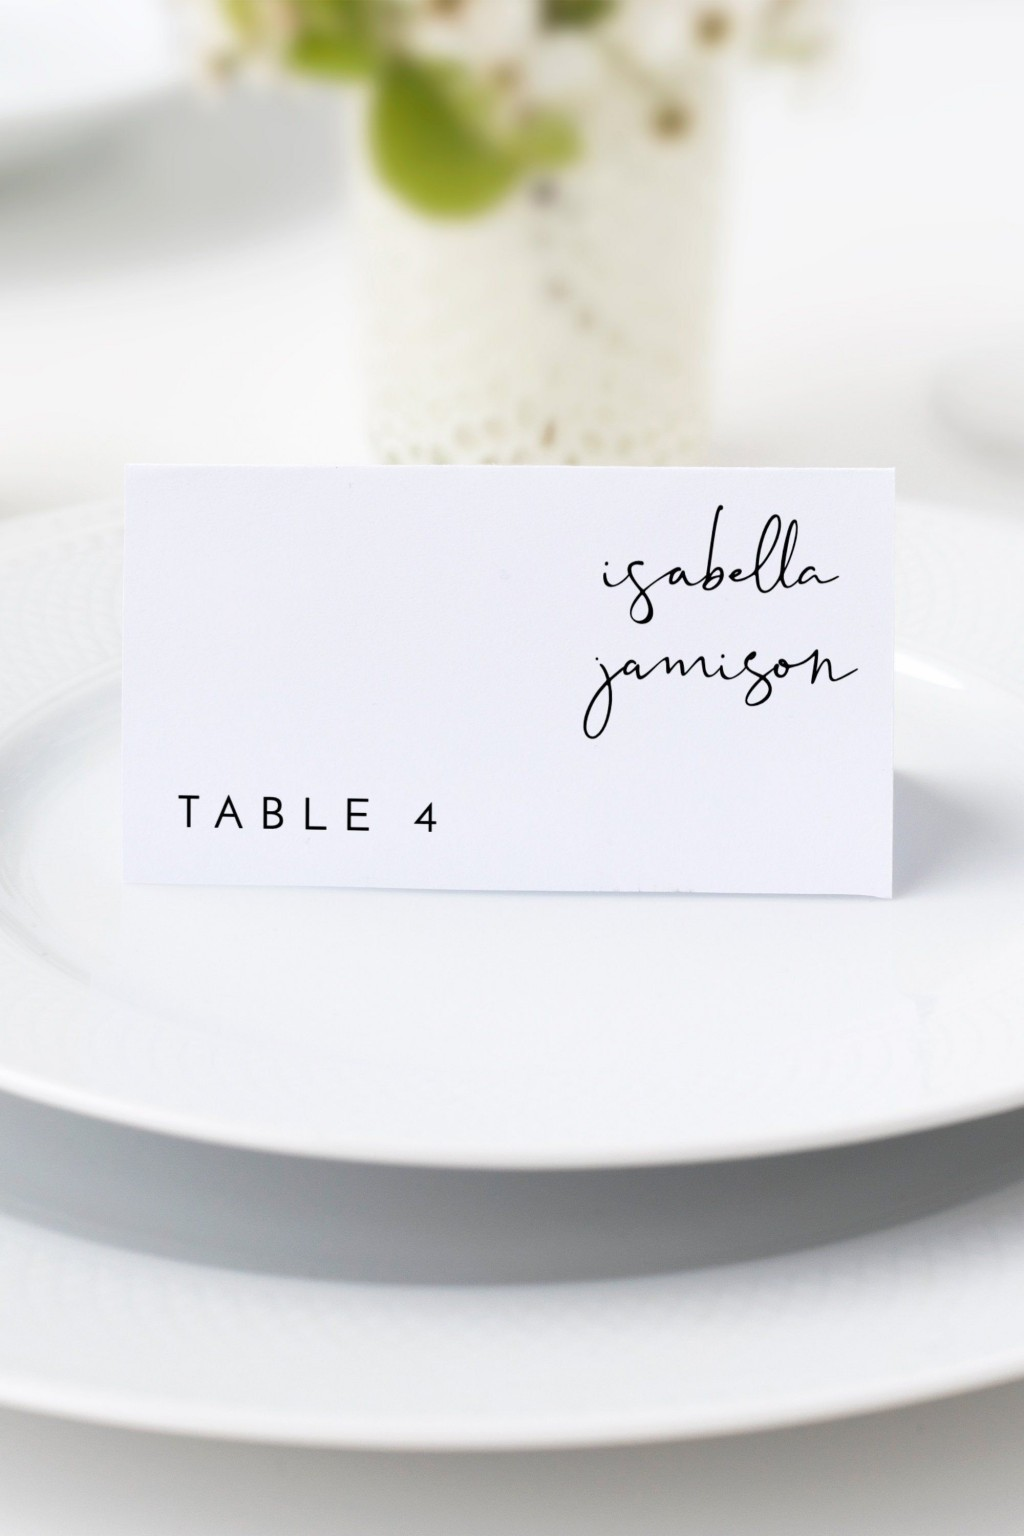 002 Fascinating Wedding Name Card Template Picture  Free Download Design Sticker FormatLarge